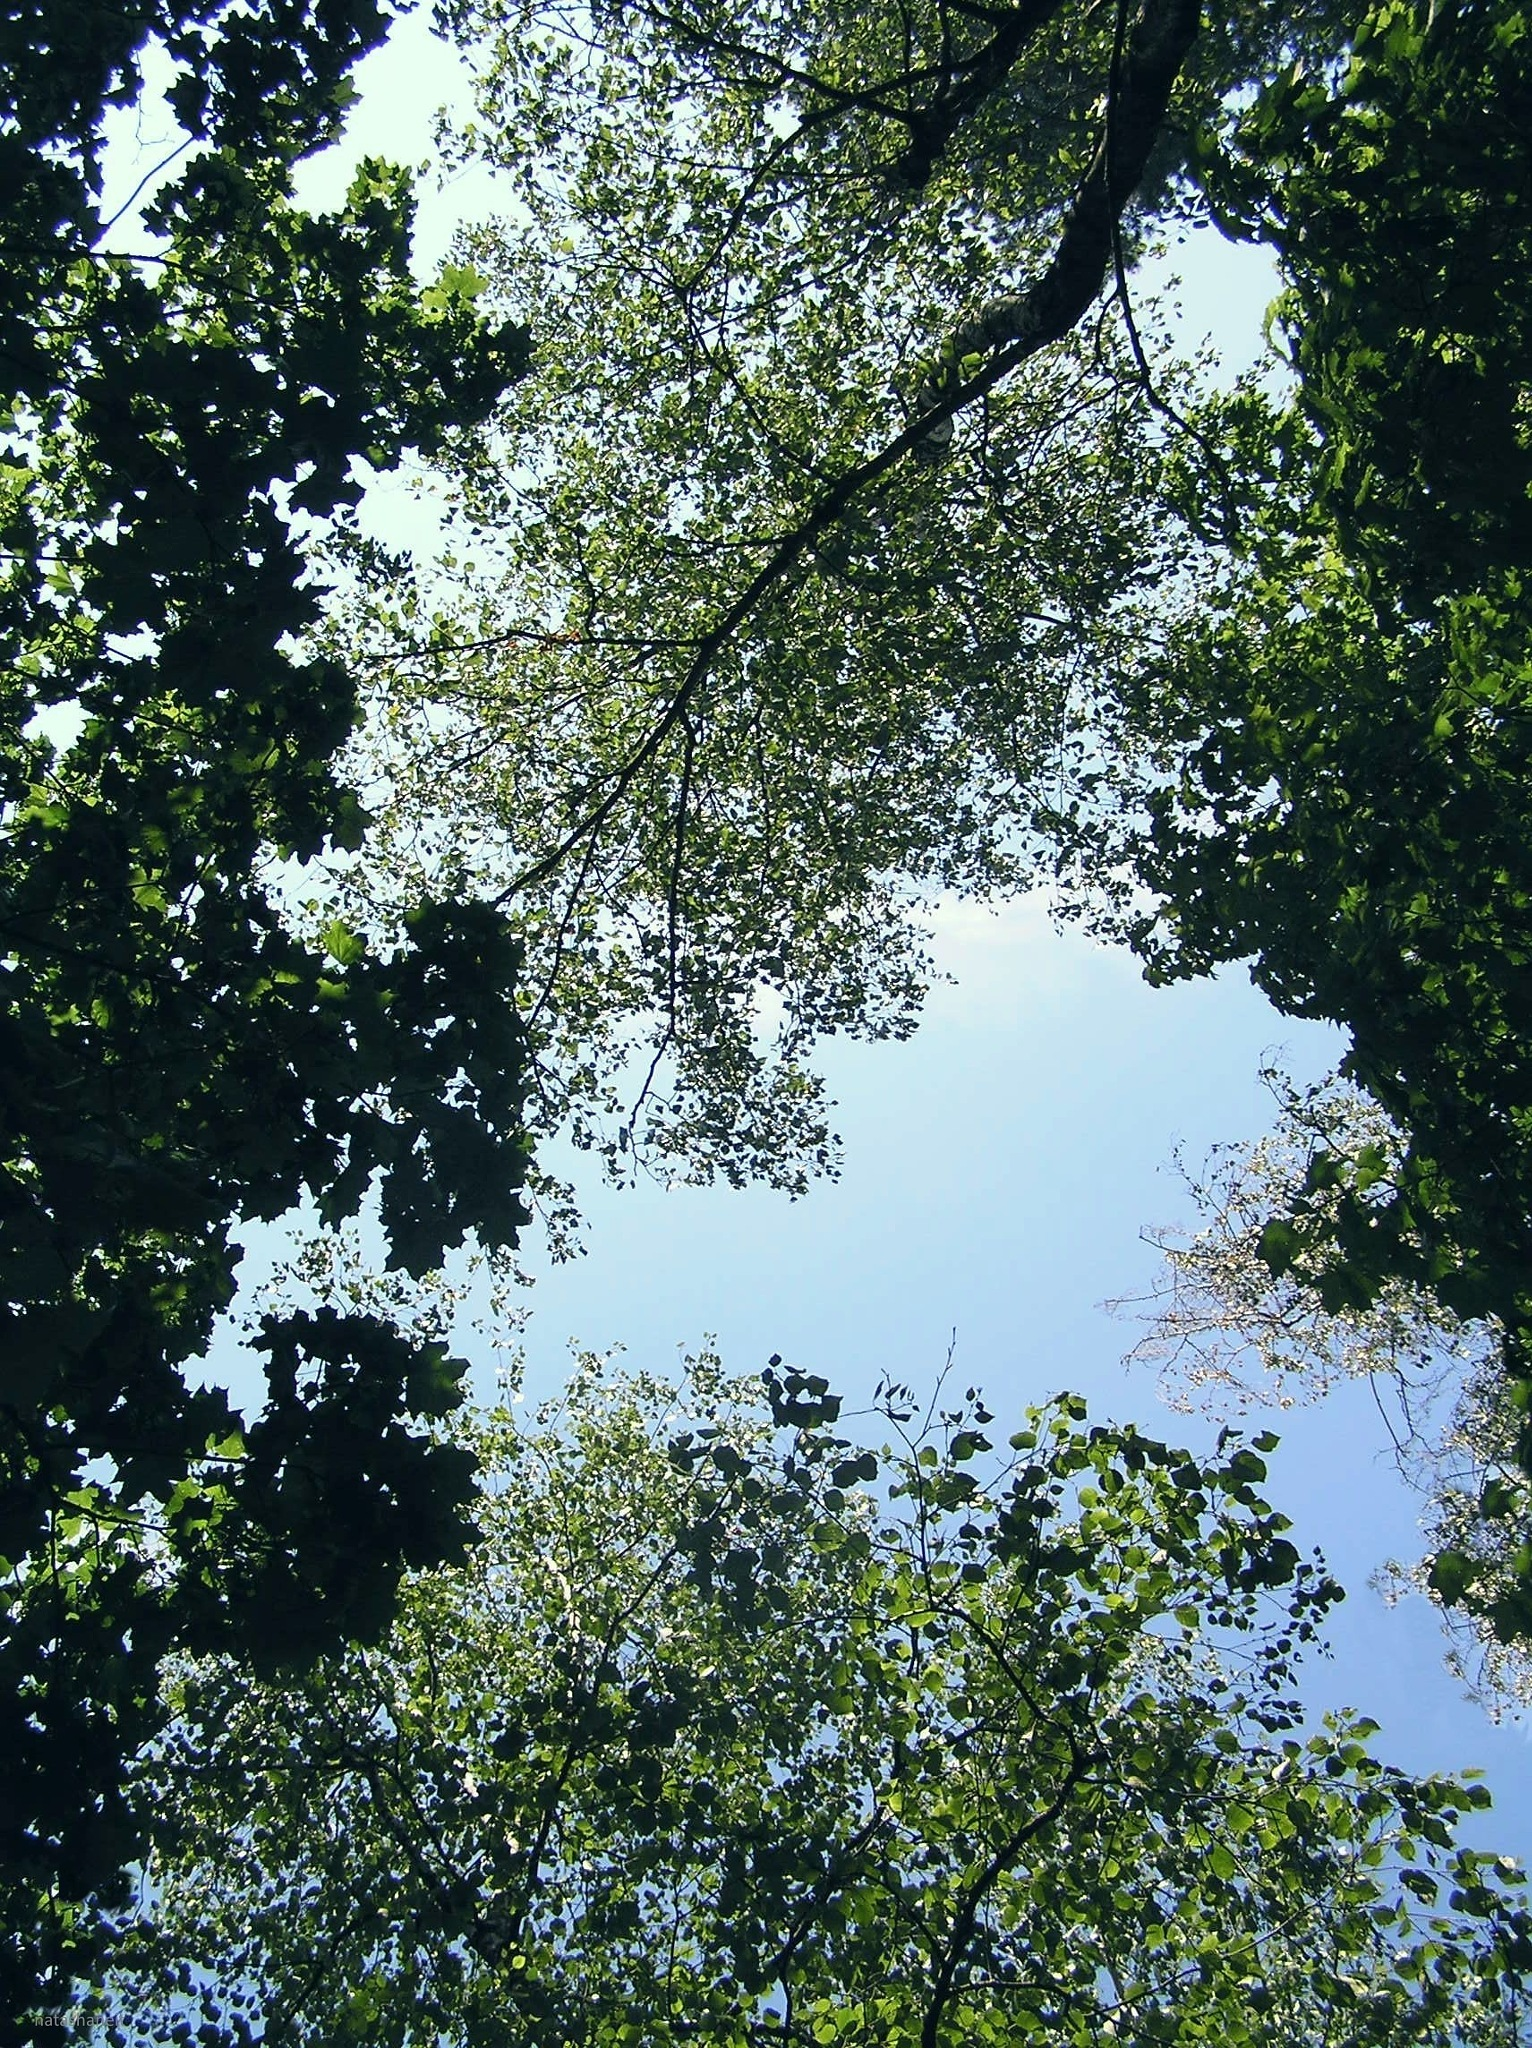 Trees in the forest park by natashaneit